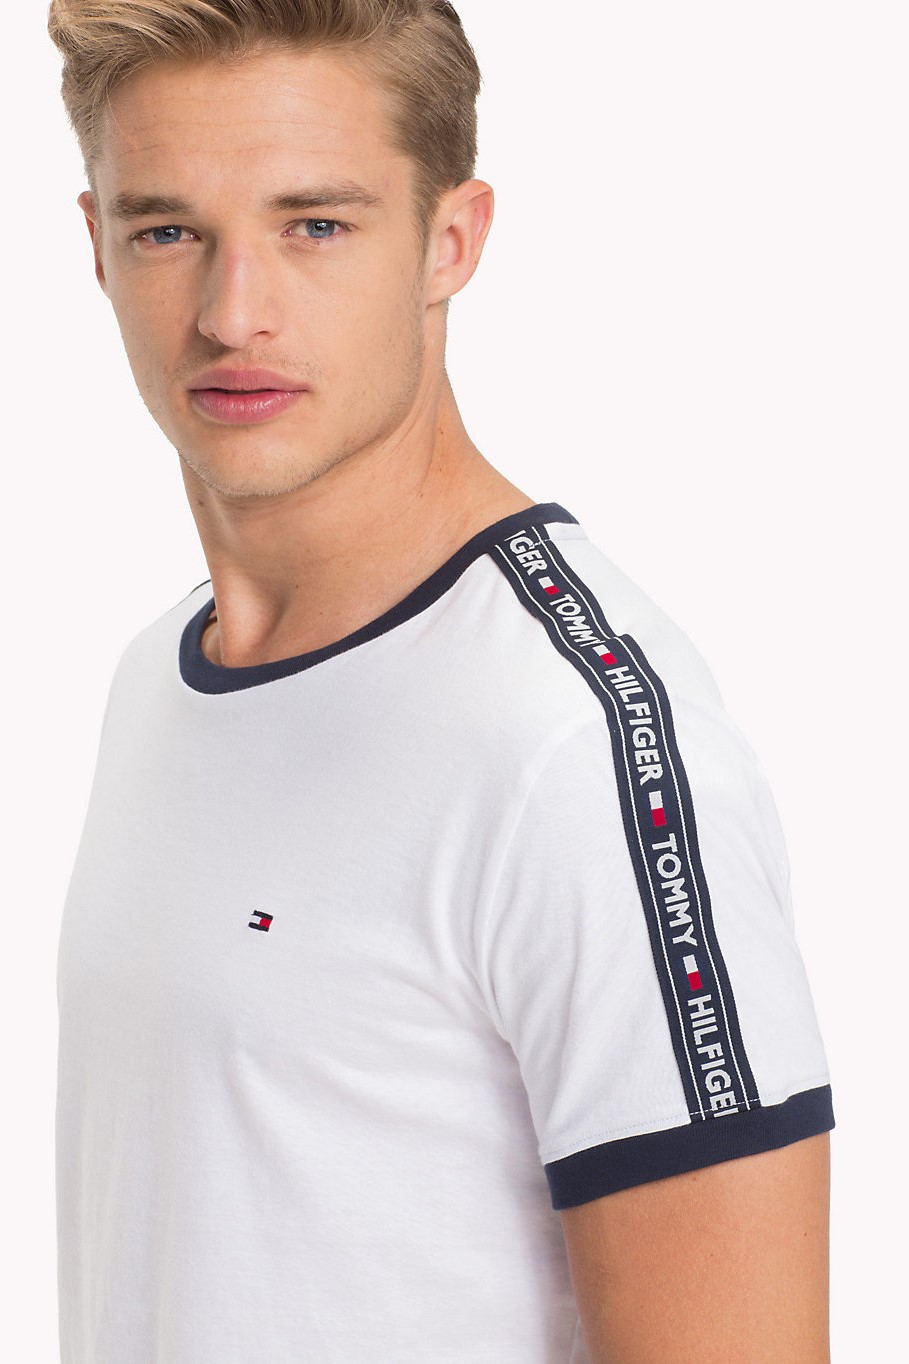 Tommy Hilfiger white men's t-shirt RN Tee SS